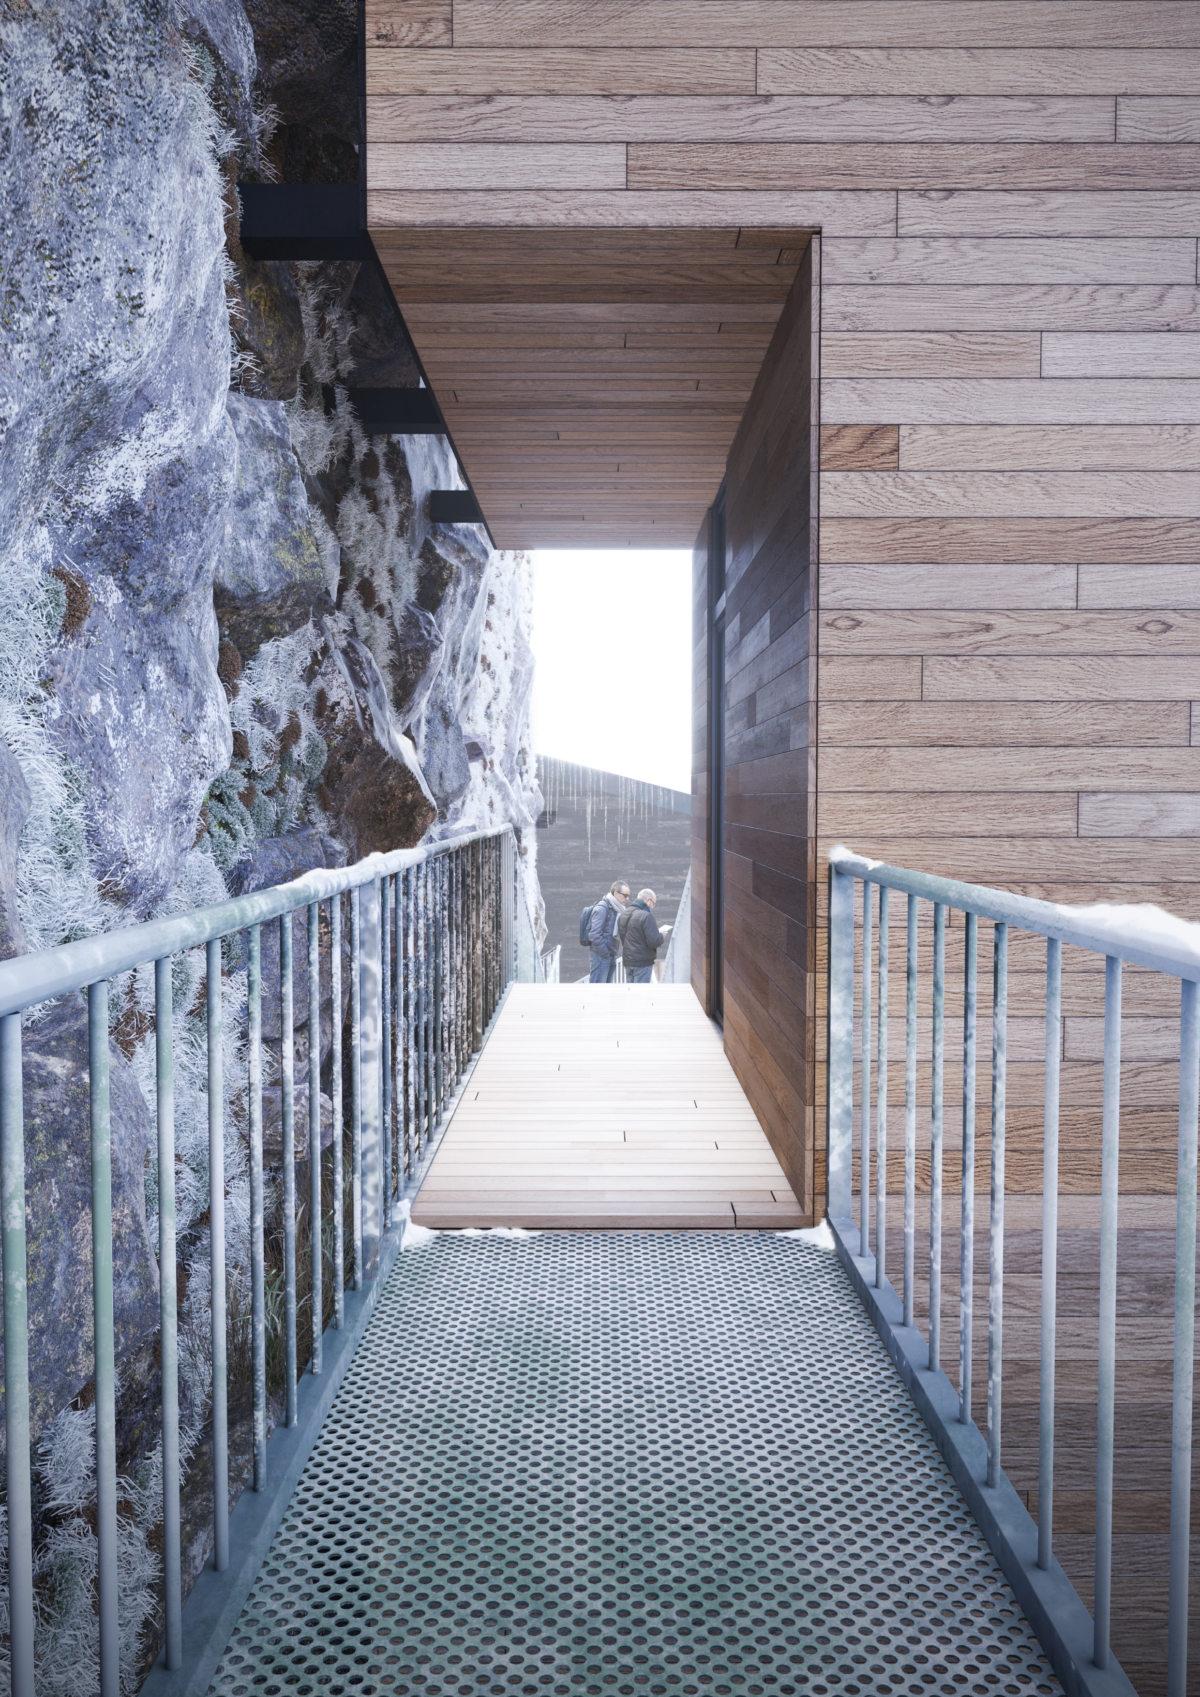 Manofactory designs Nestingbox cliff house to hang over steep cliff walls